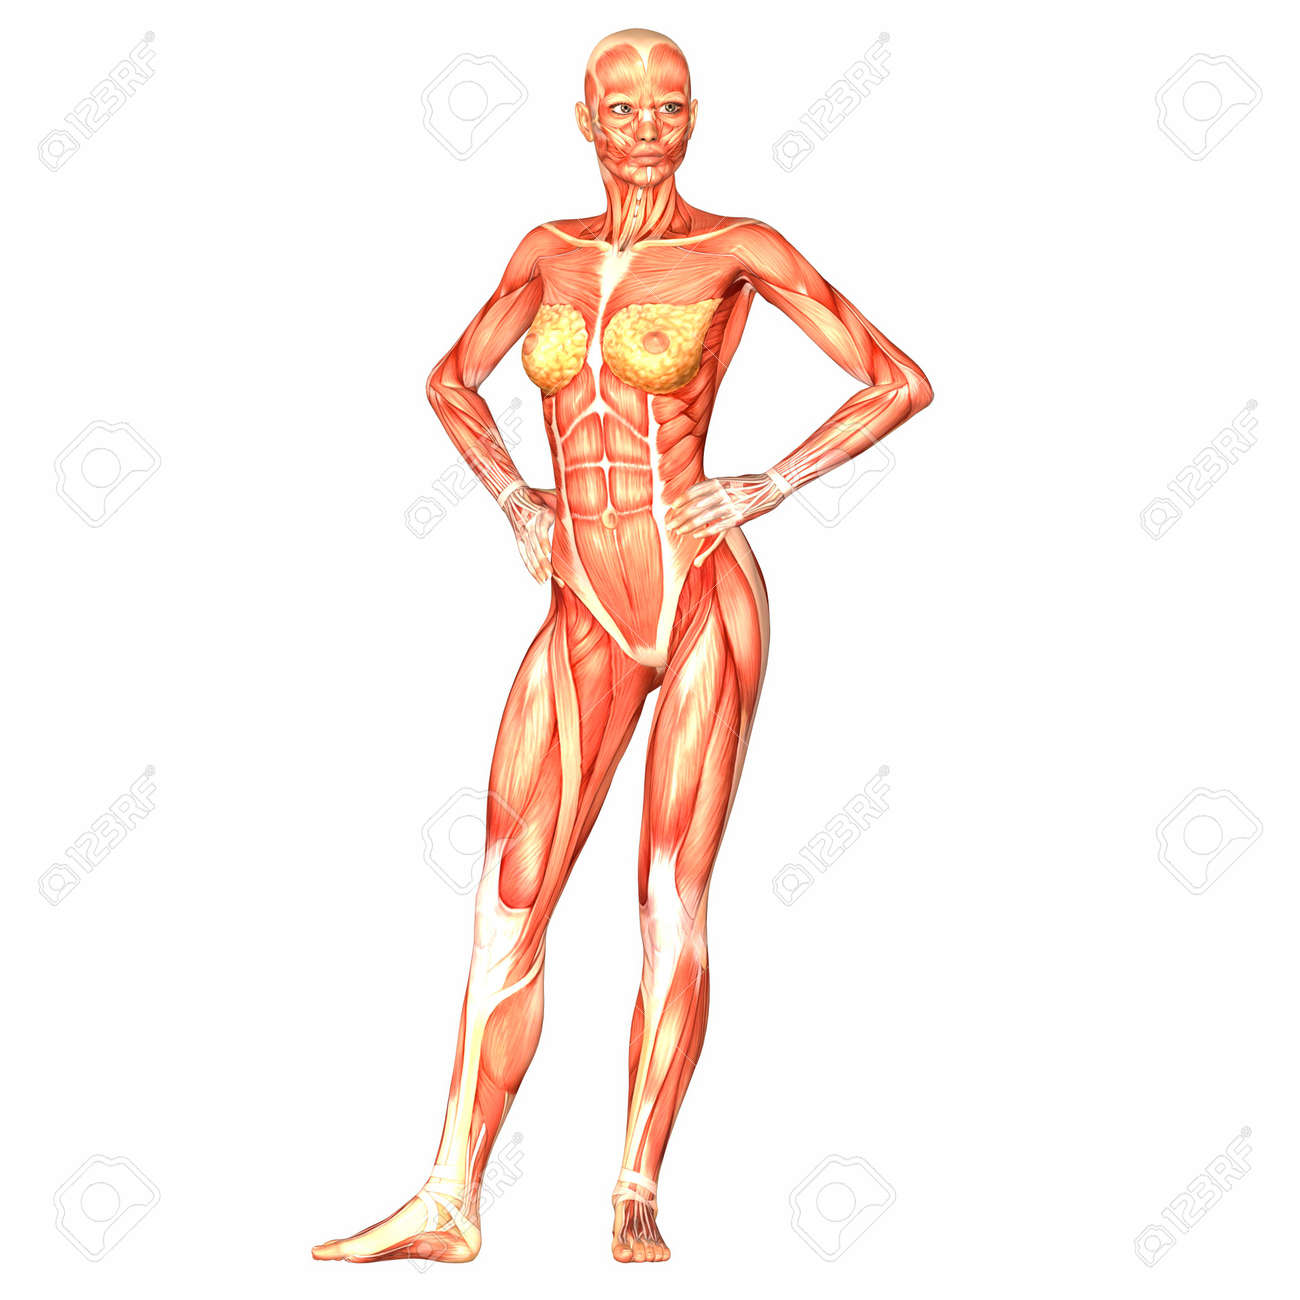 illustration of the anatomy of the female human body isolated, Muscles